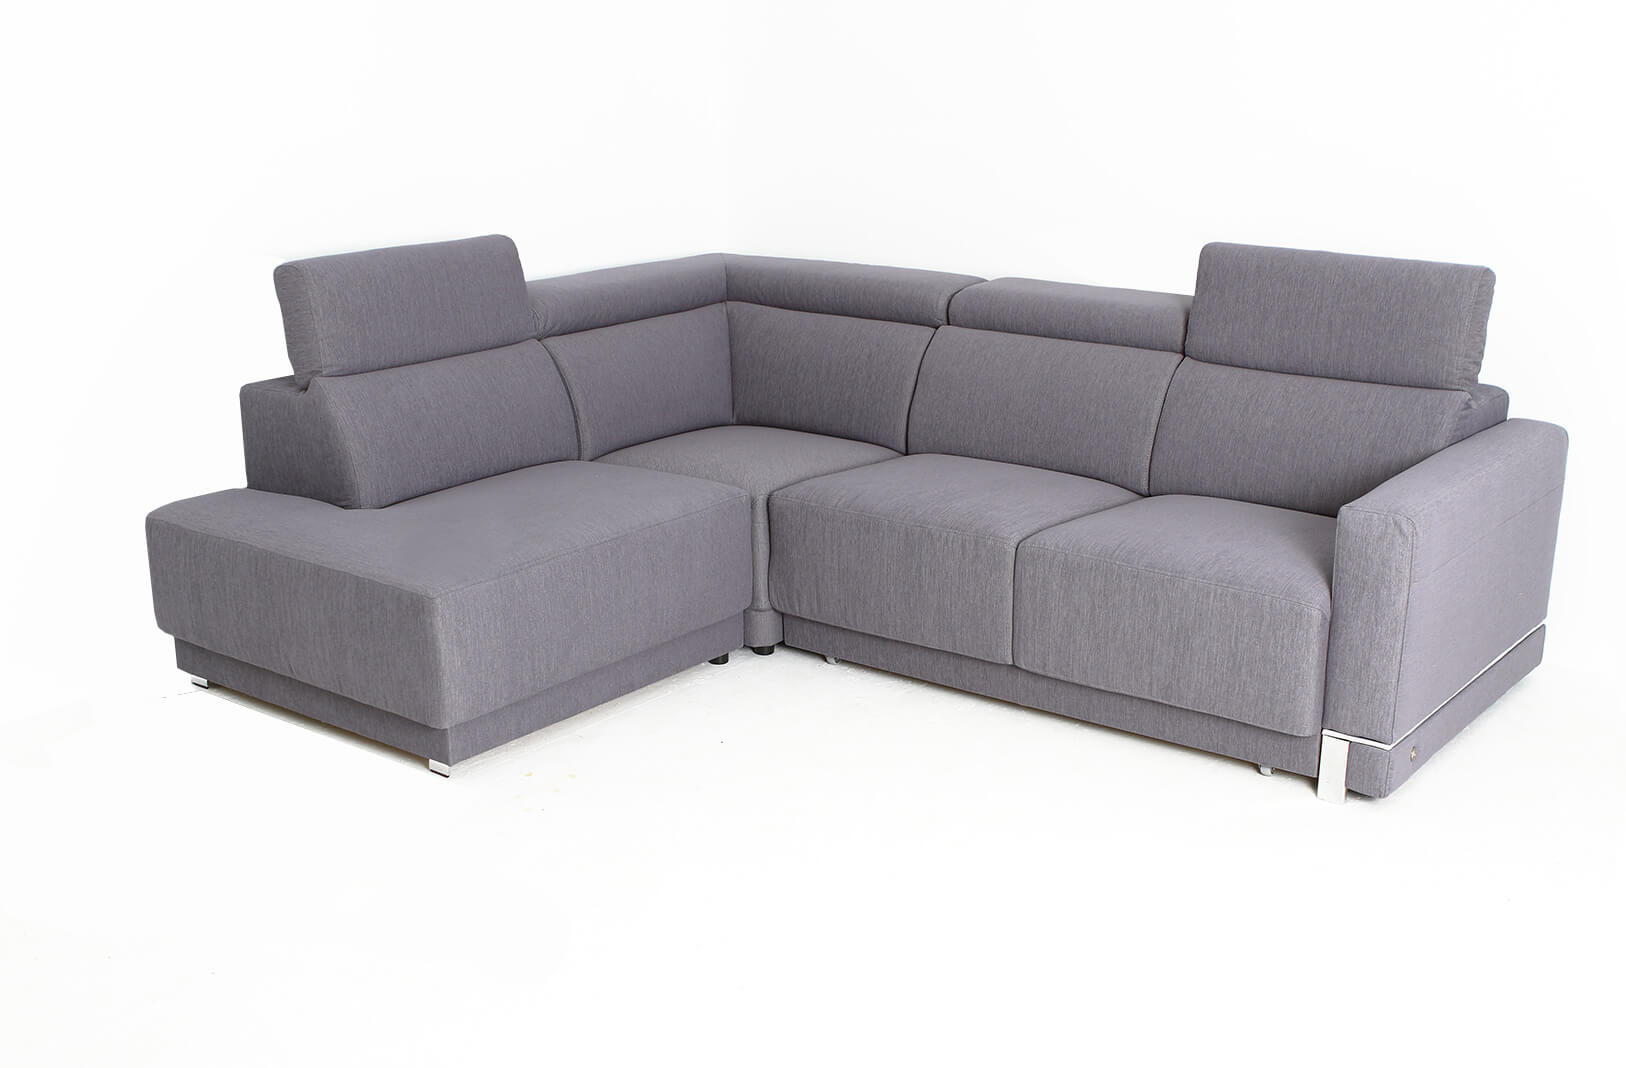 Marburg Gray Sectional With Sofa Bed And Storage 9252 Left Facing Chaise Buy 3399 In A Modern Furniture Store Fairfield Nj Casa Eleganza Furniture Mattress